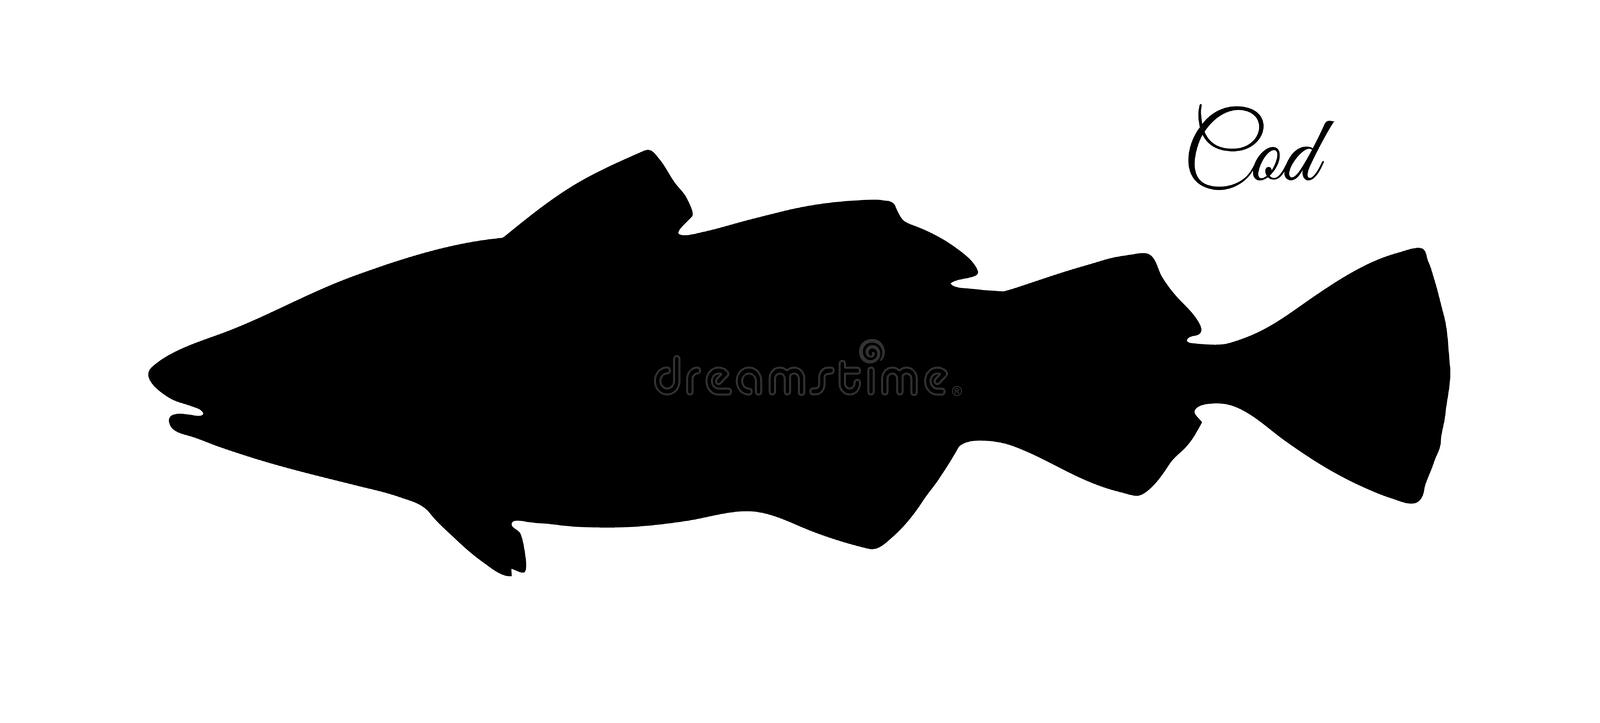 Silhouette of cod fish. Hand drawn vector illustration isolated on white background royalty free illustration